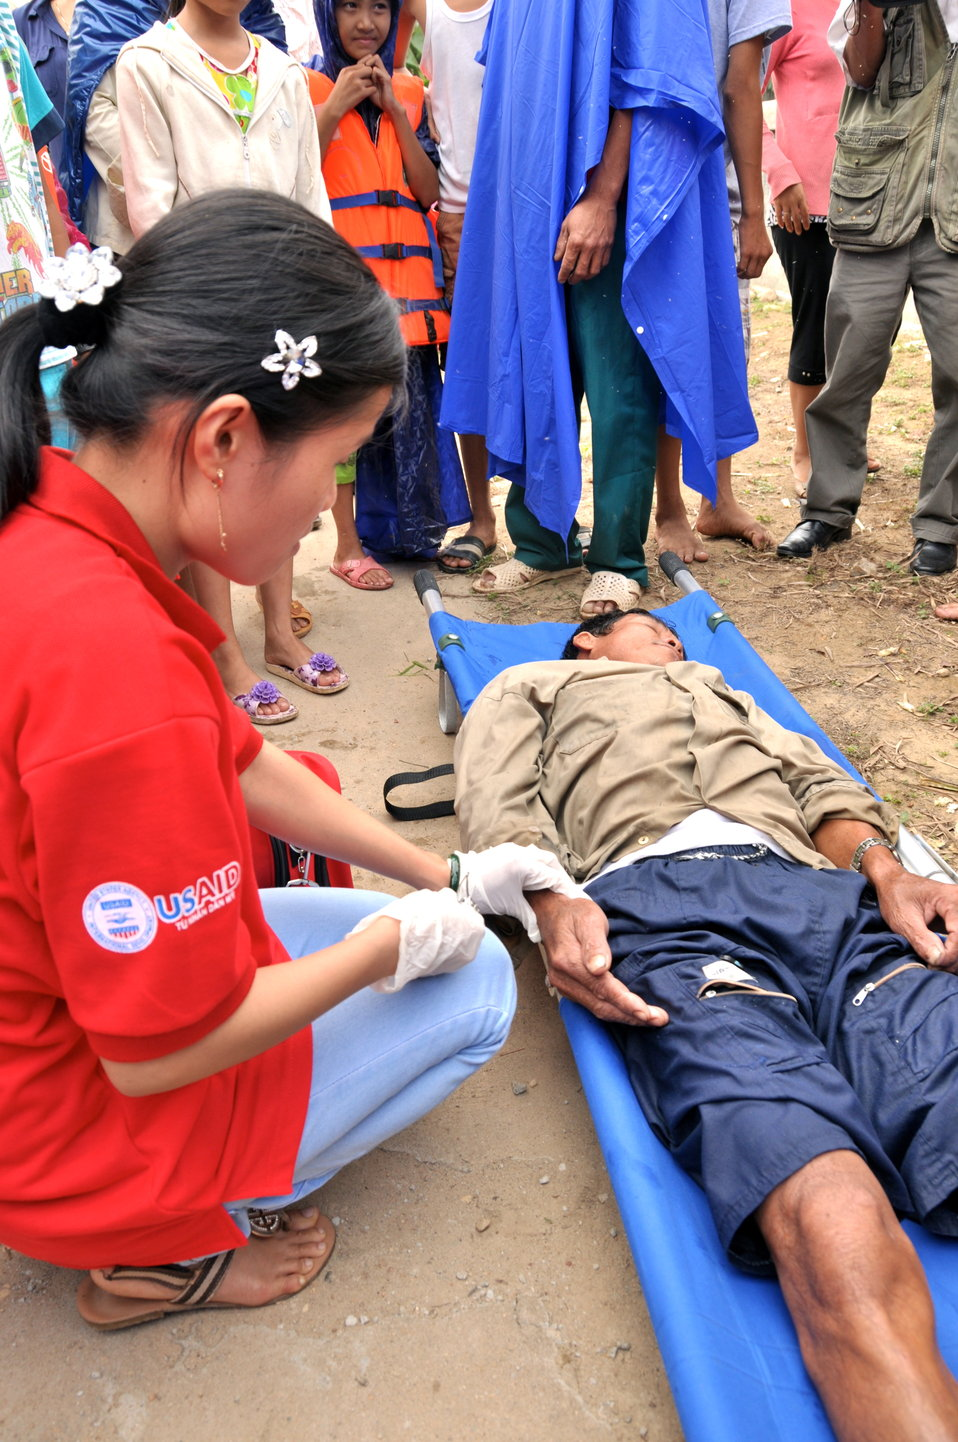 USAID and Save the Children support community evacuation drill and emergency preparedness in central Vietnam